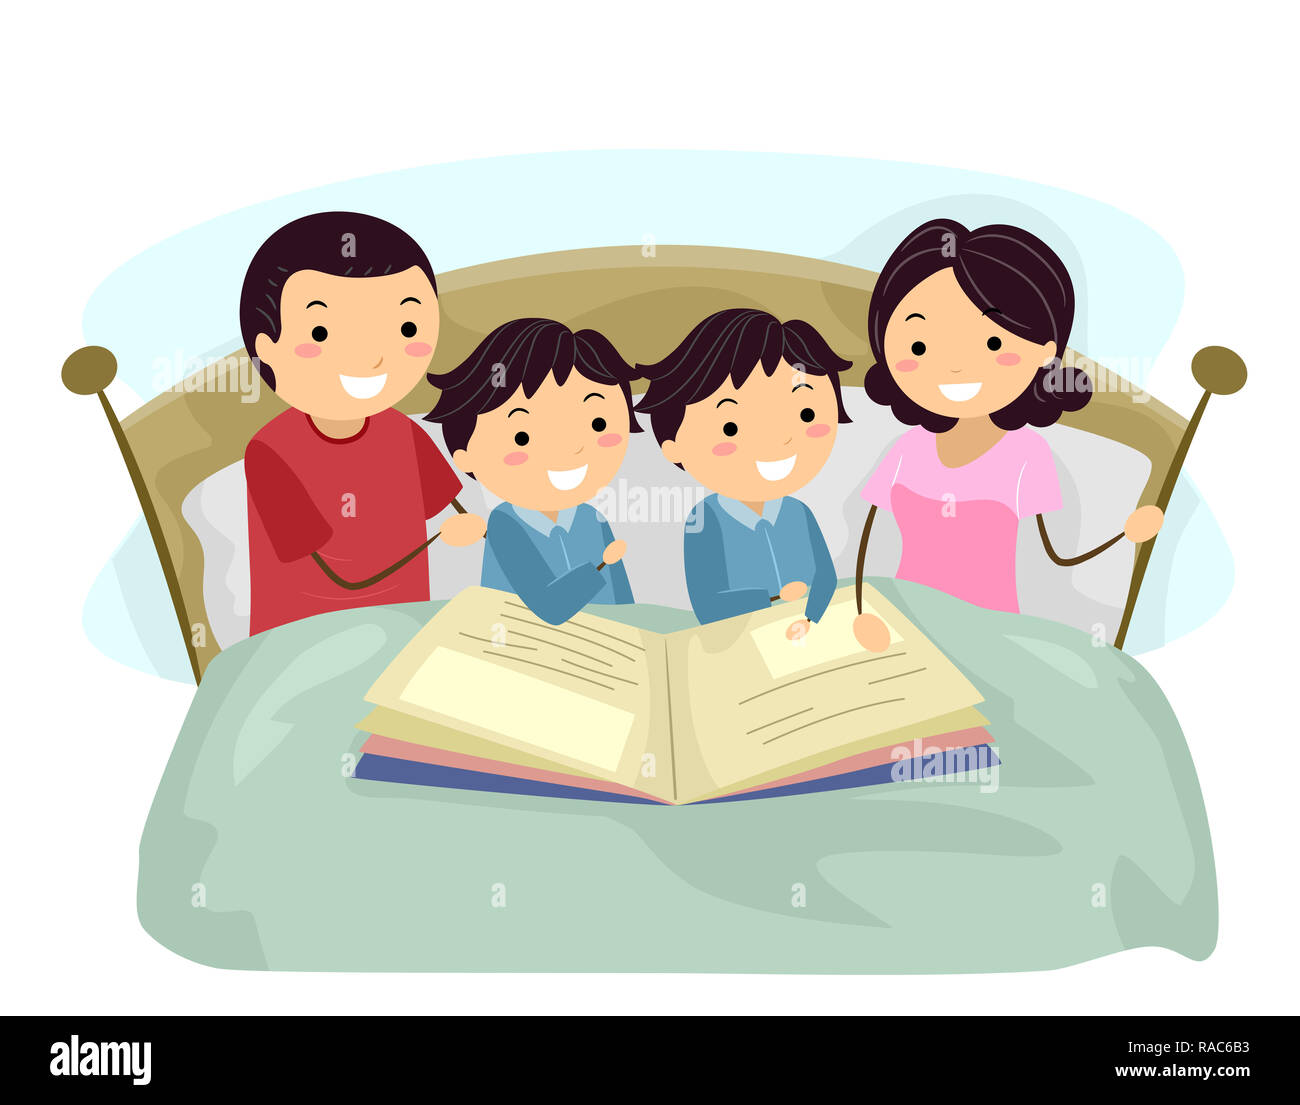 illustration of stickman family with twin kid boys